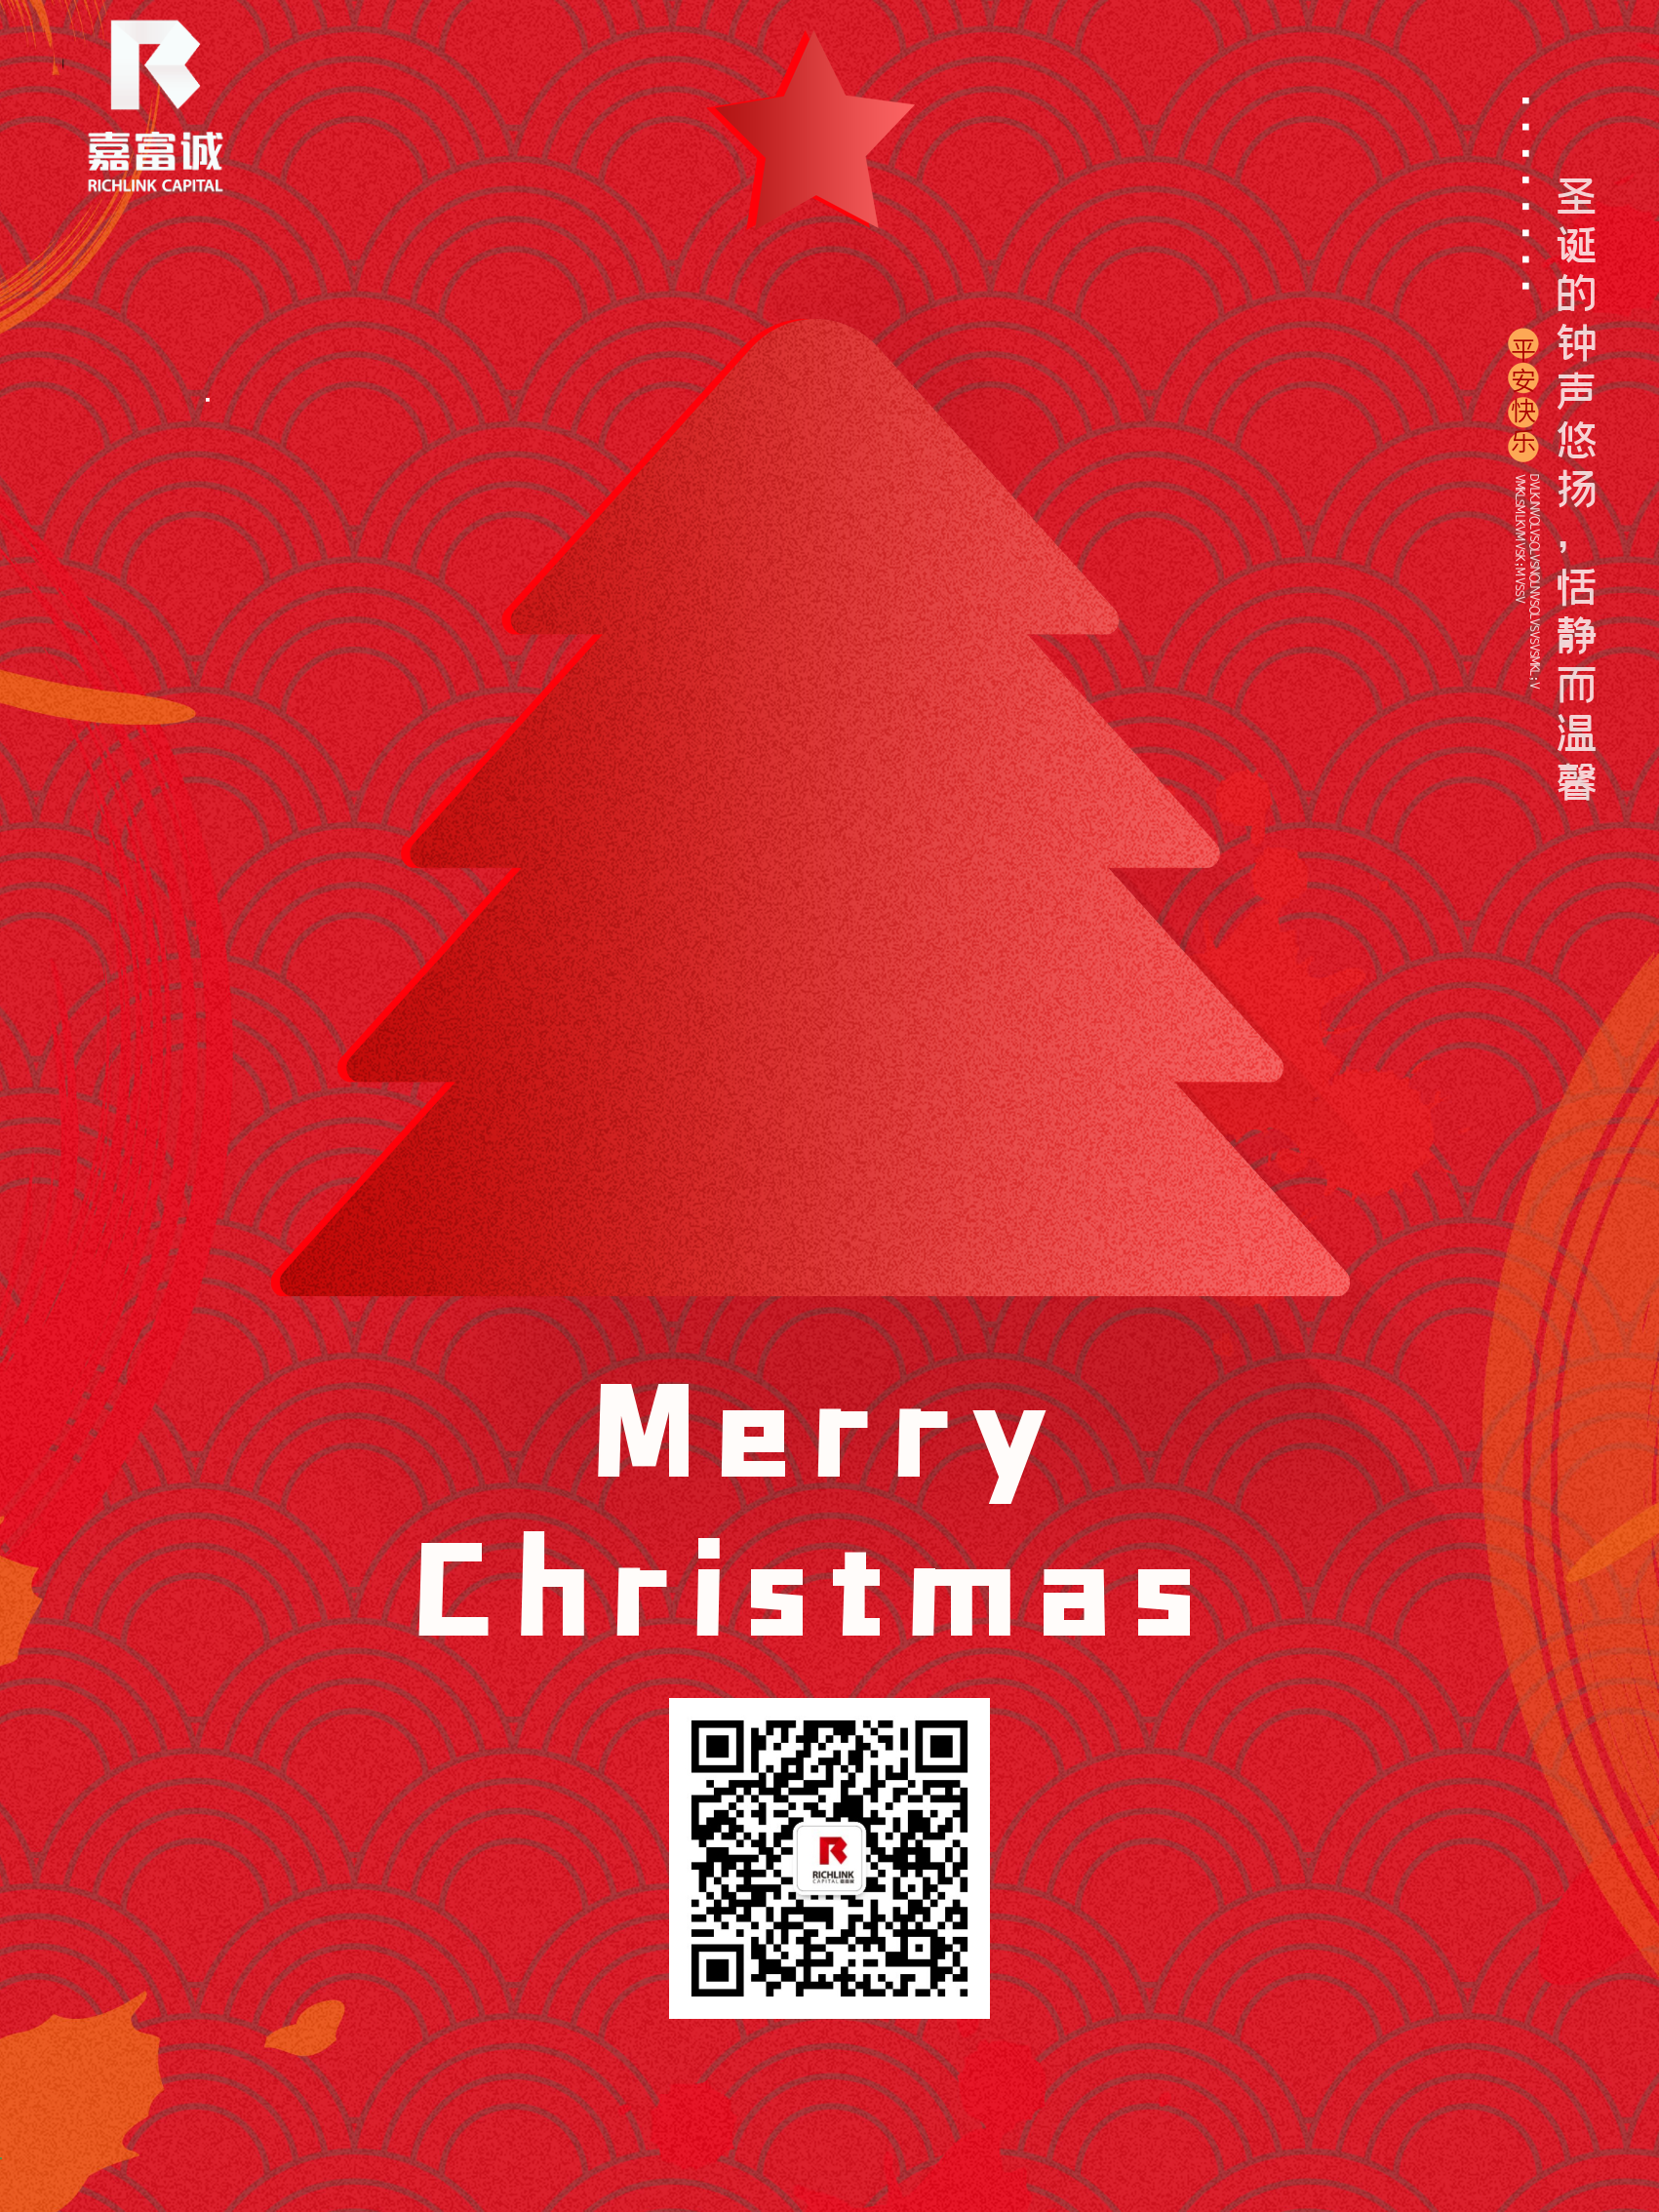 RICHLINK TEAM WISH YOU A MERRY CHRISTMAS AND HAPPY NEW YEAR!